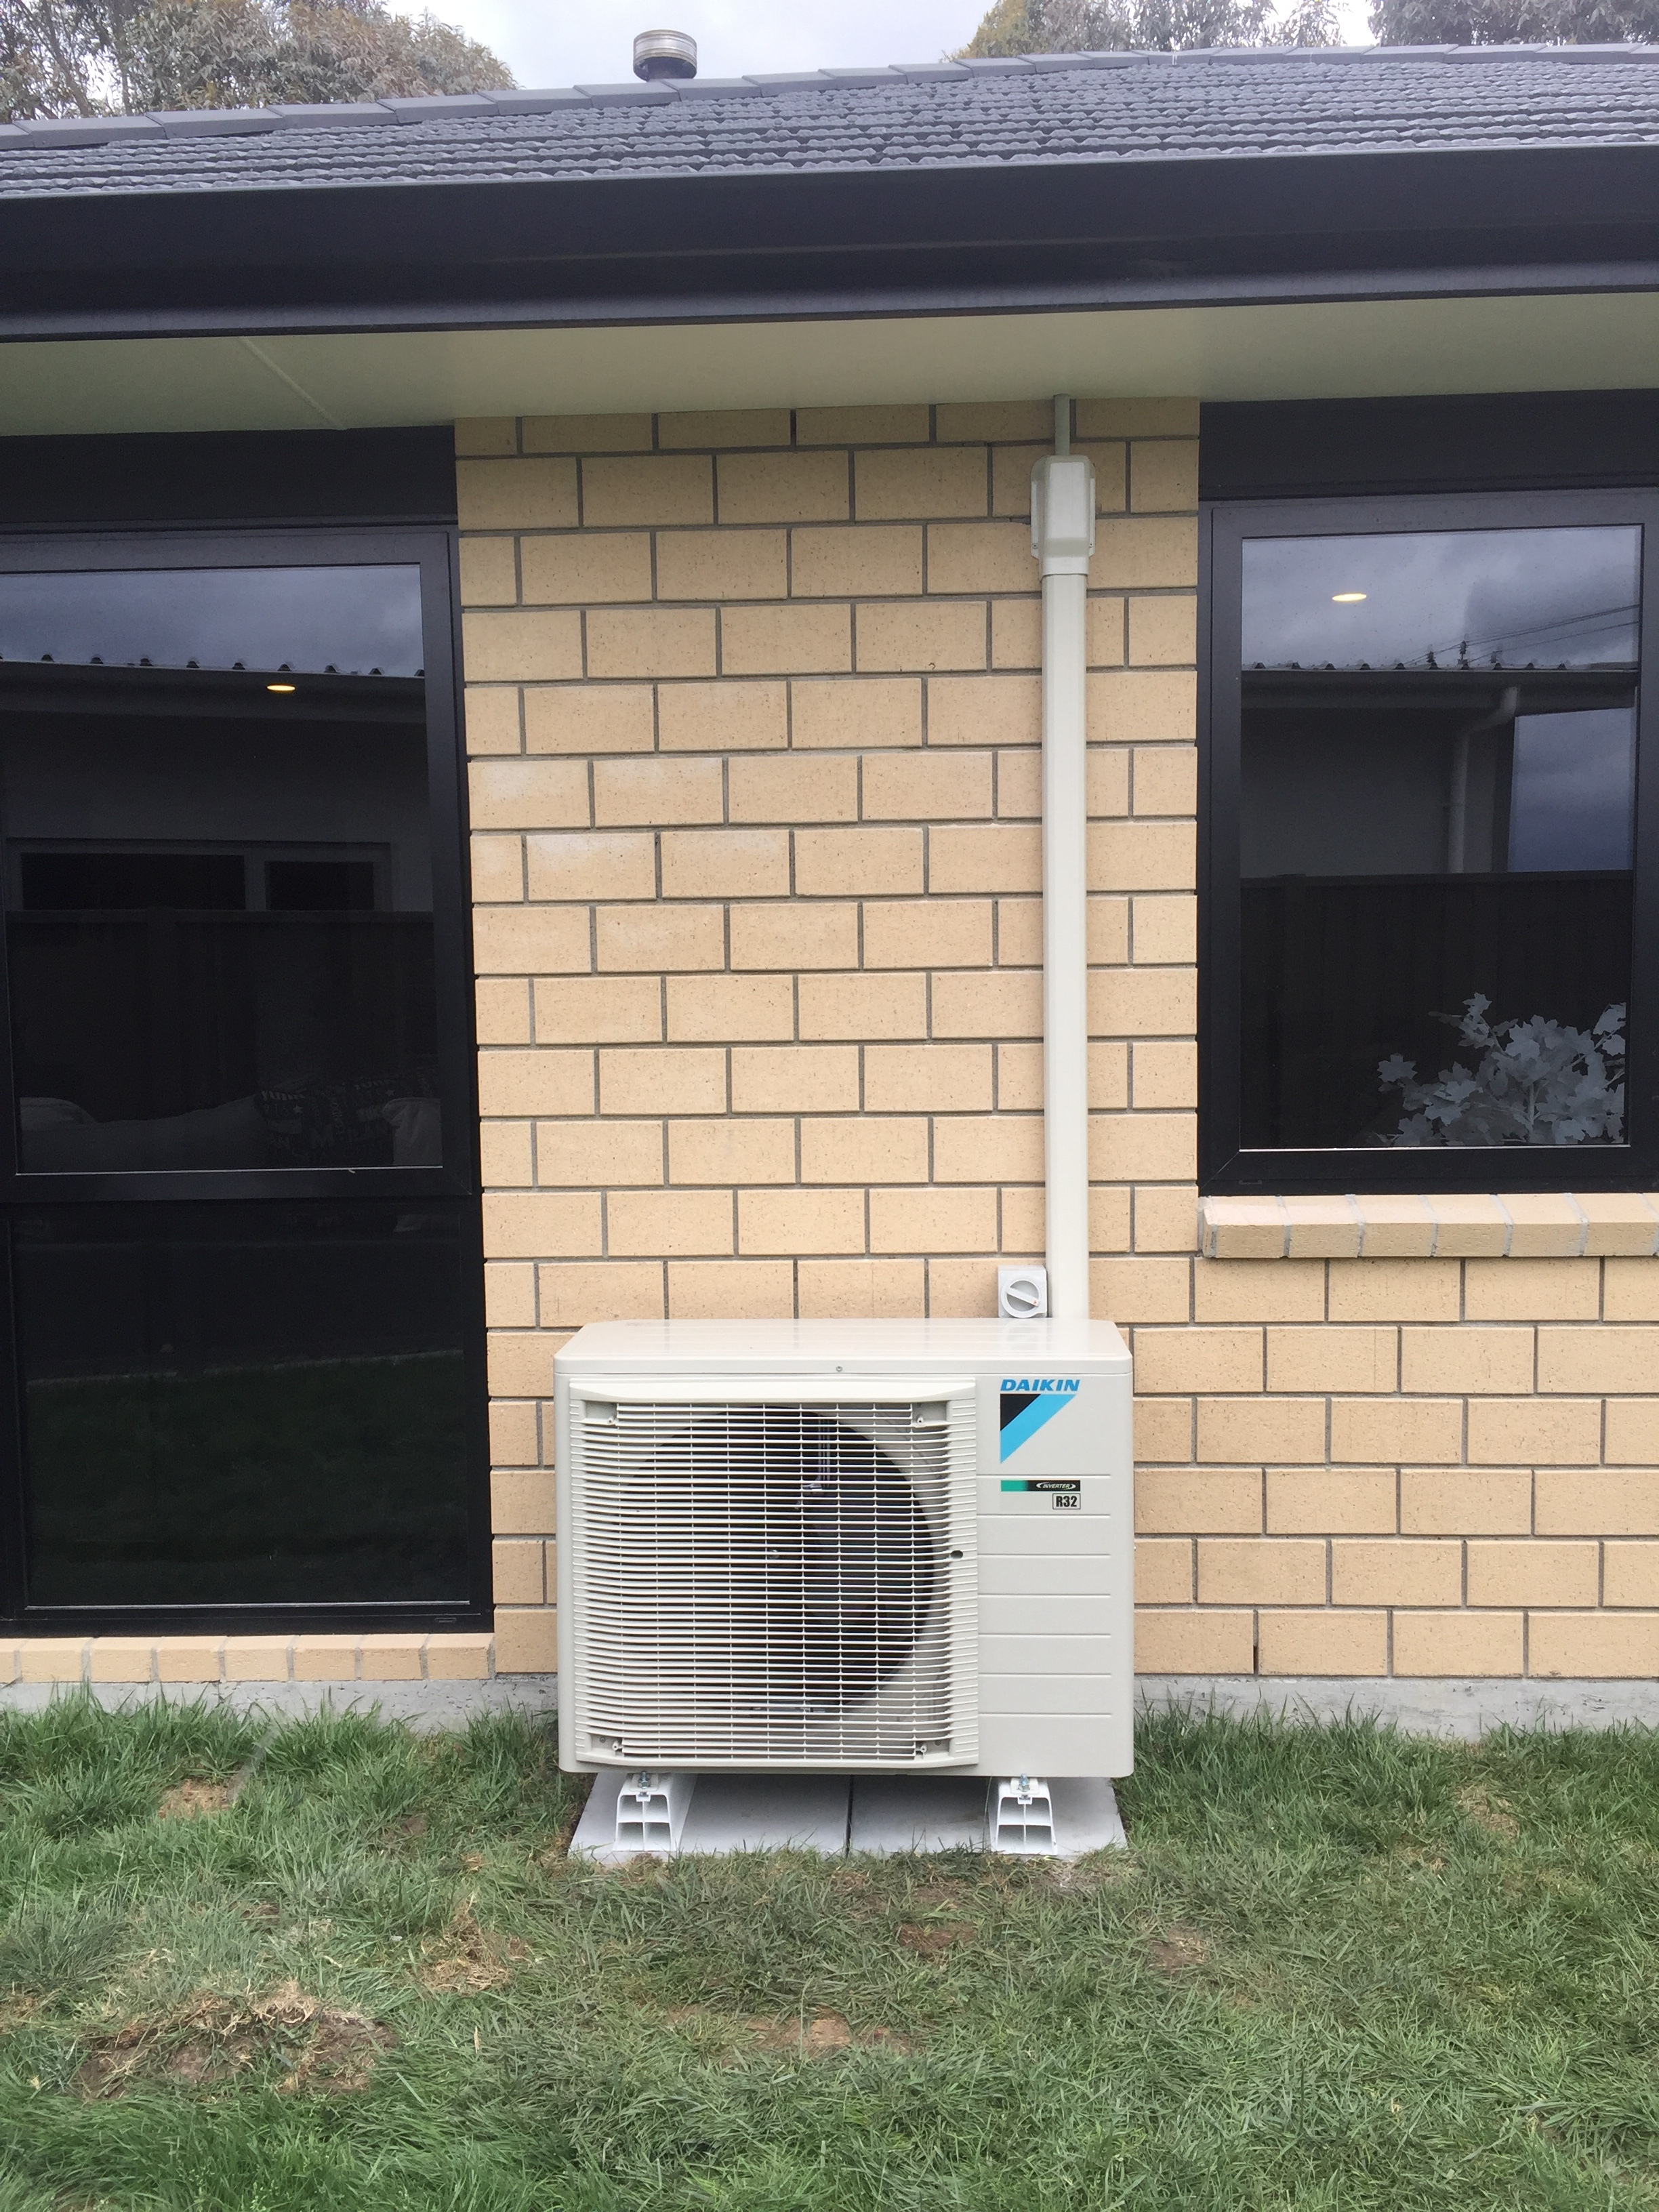 Daikin Heatpump